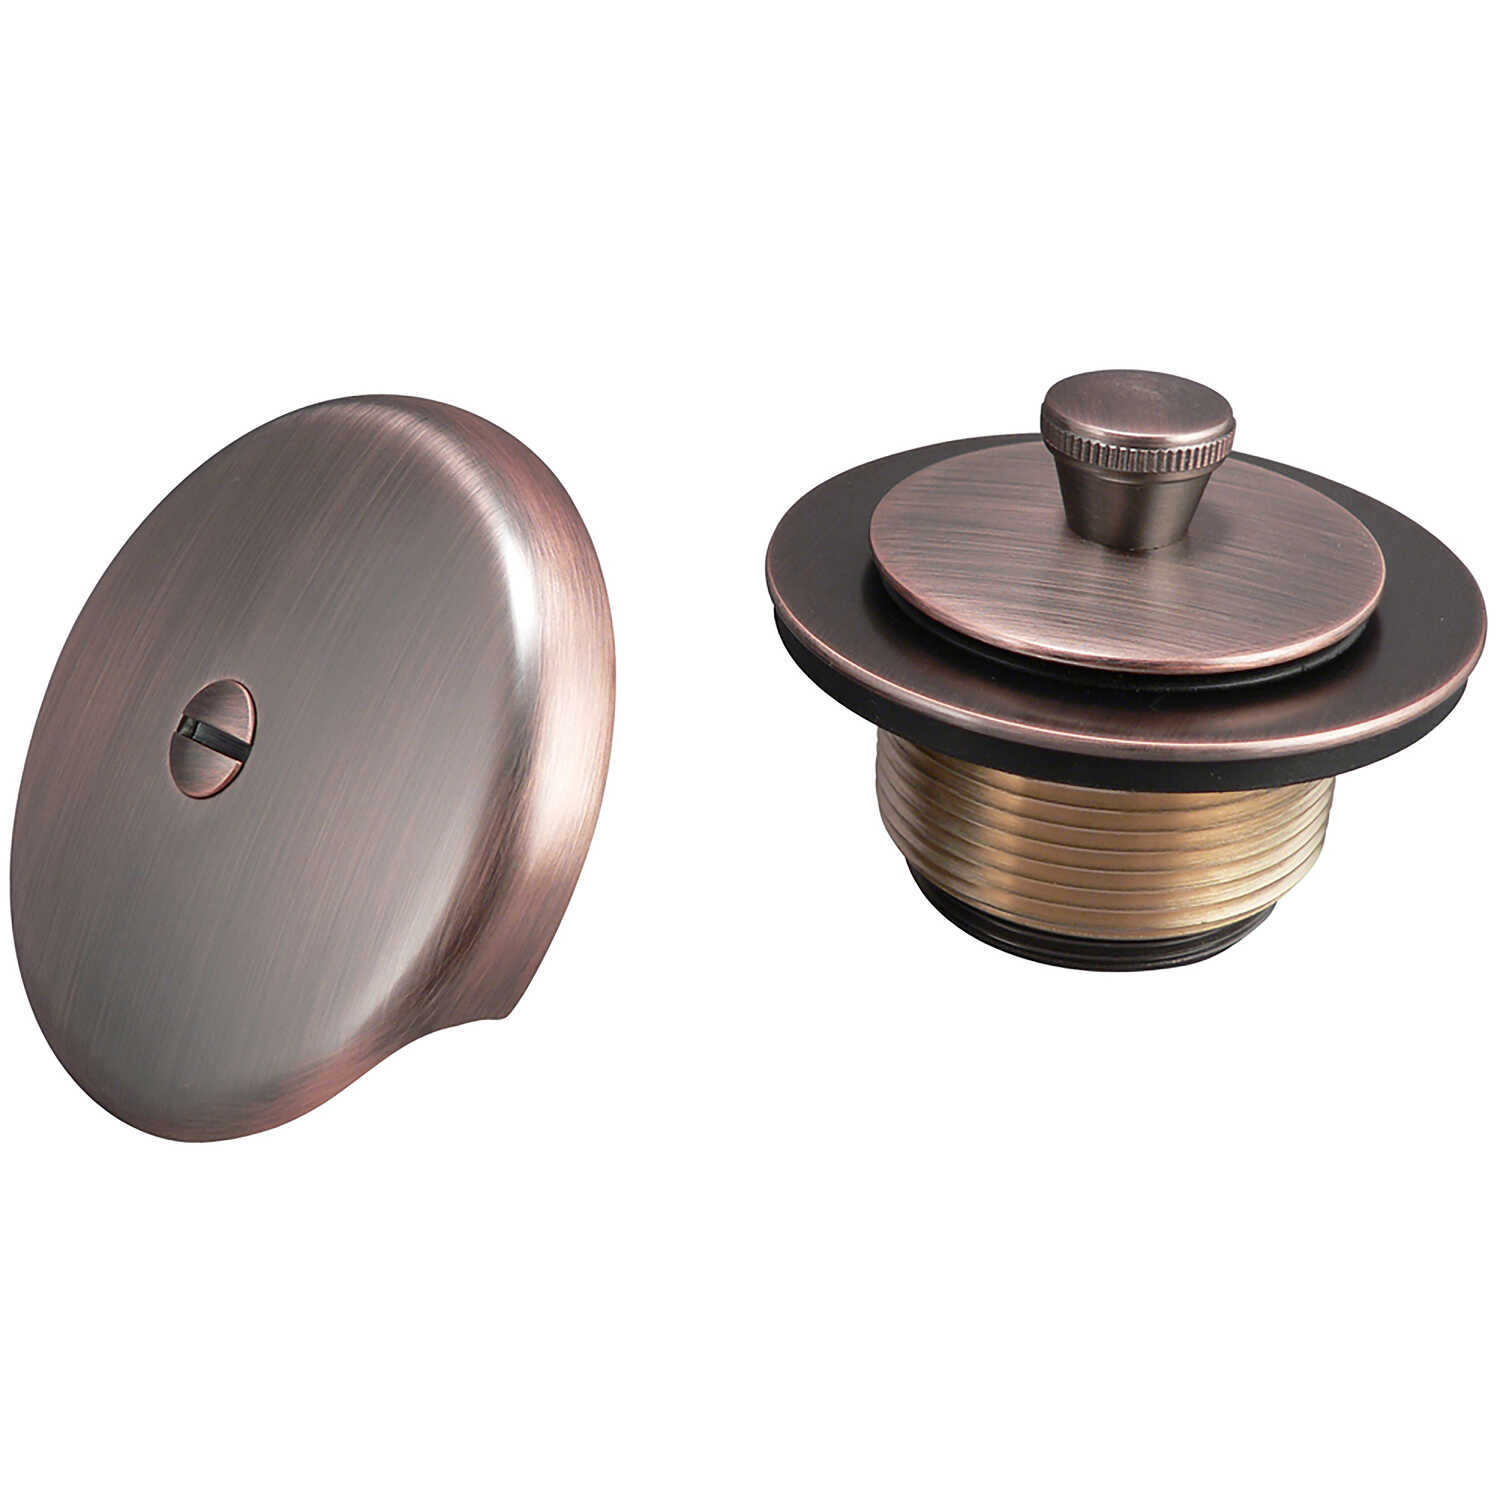 Keeney  Trim Kit for Roller Ball  1  N/A  Venetian Bronze Finish Metal Material